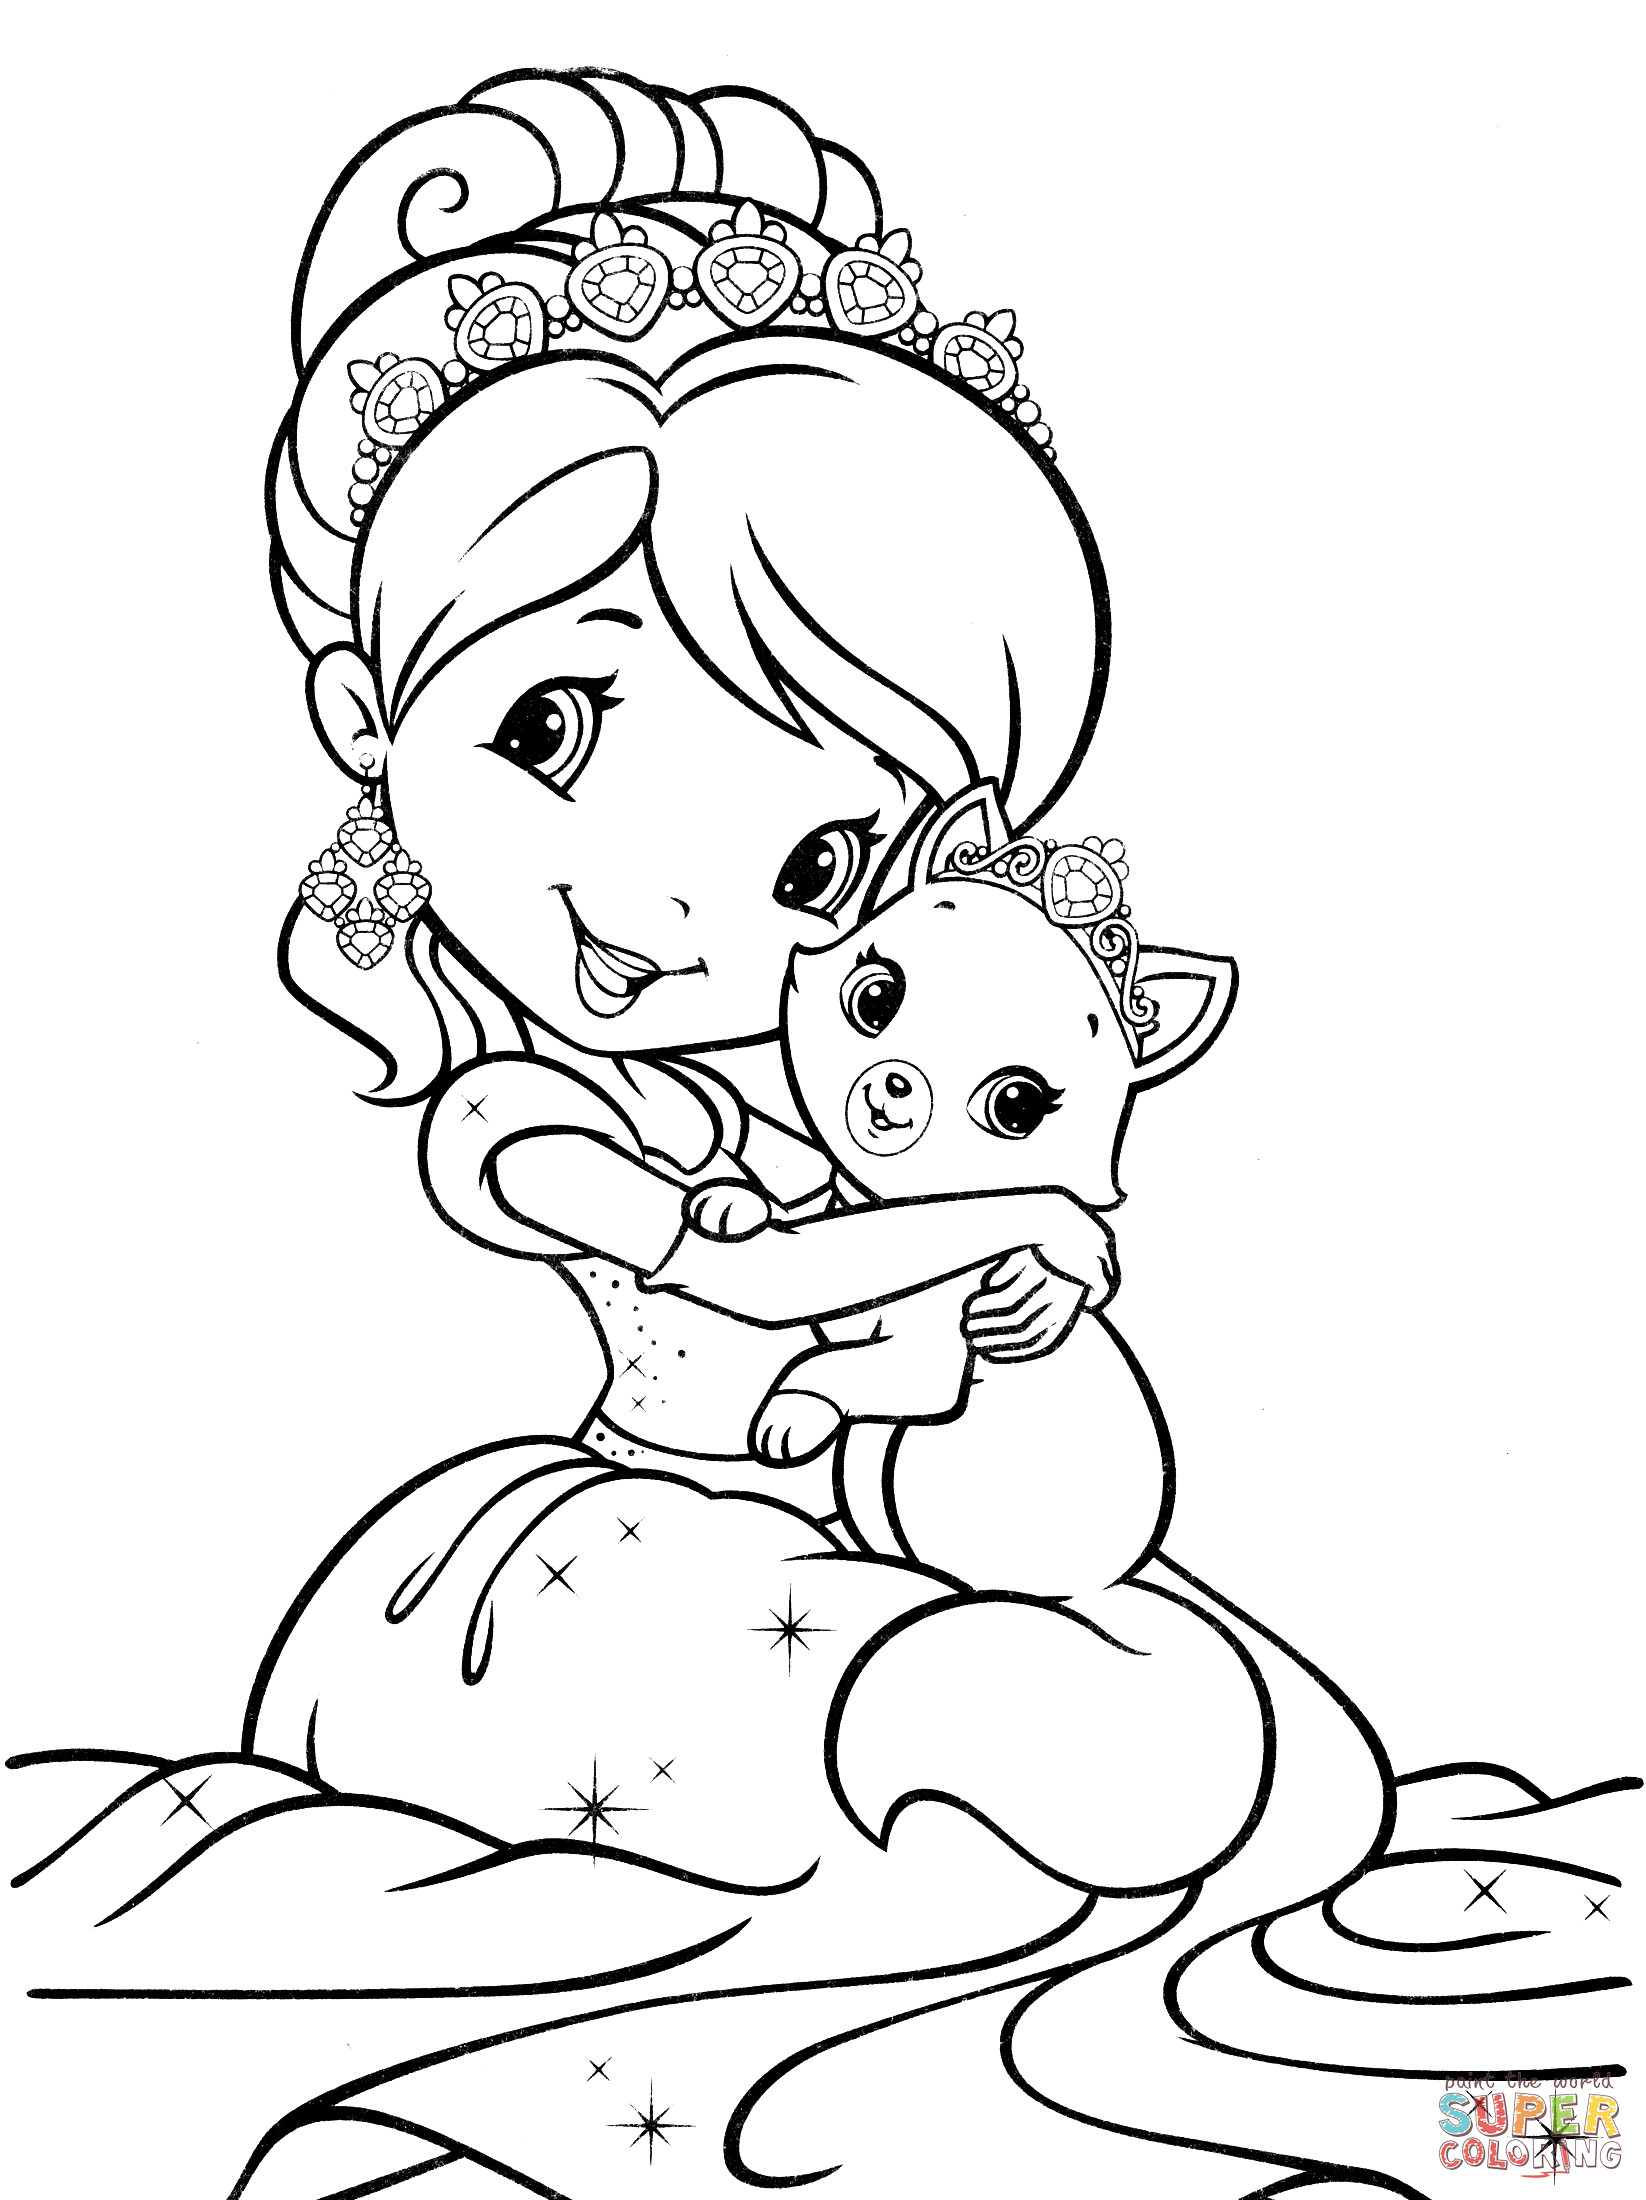 strawberry shortcake coloring pages free - photo#9